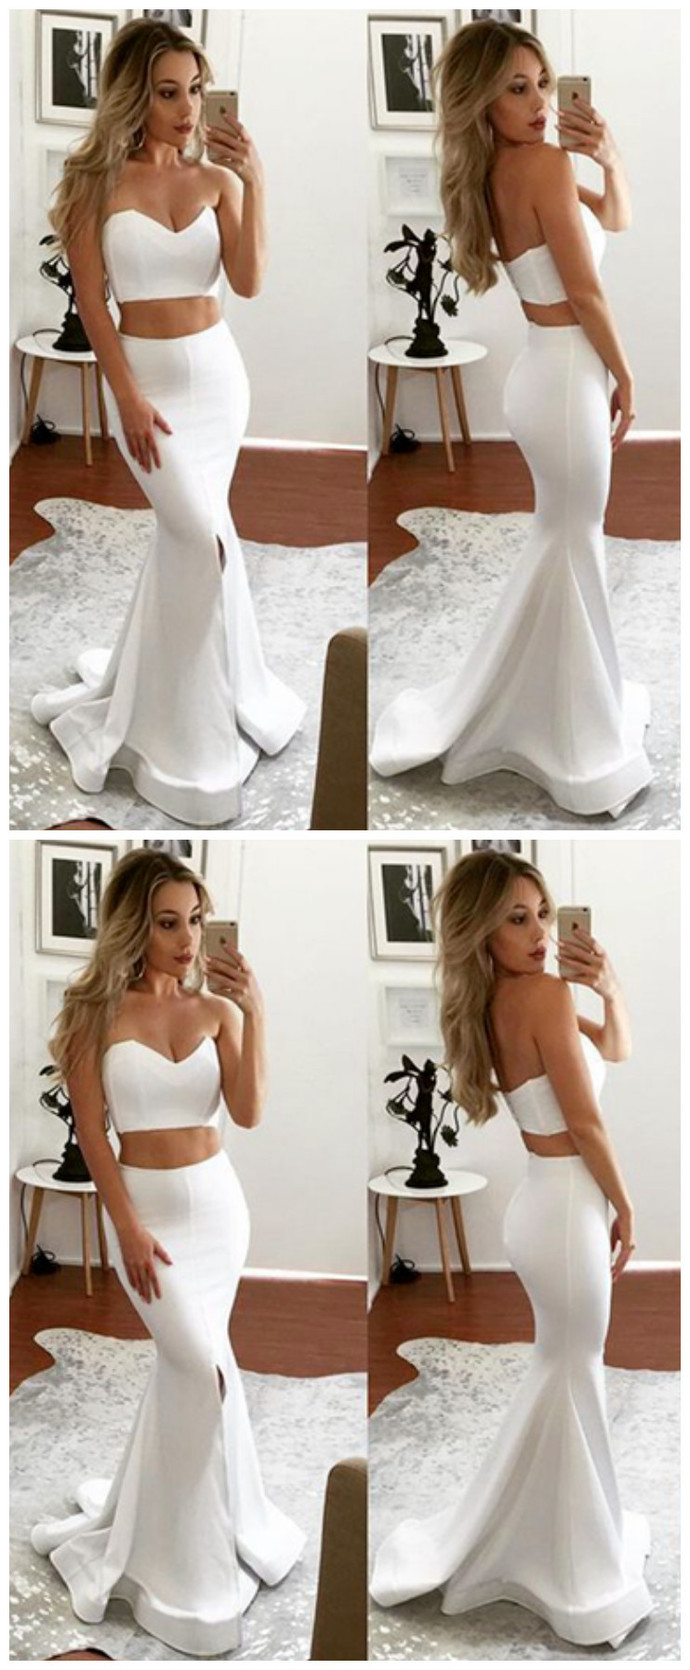 Two Pieces Sweetheart Mermaid Prom Dresses,Long Prom Dresses,Cheap Prom Dresses,